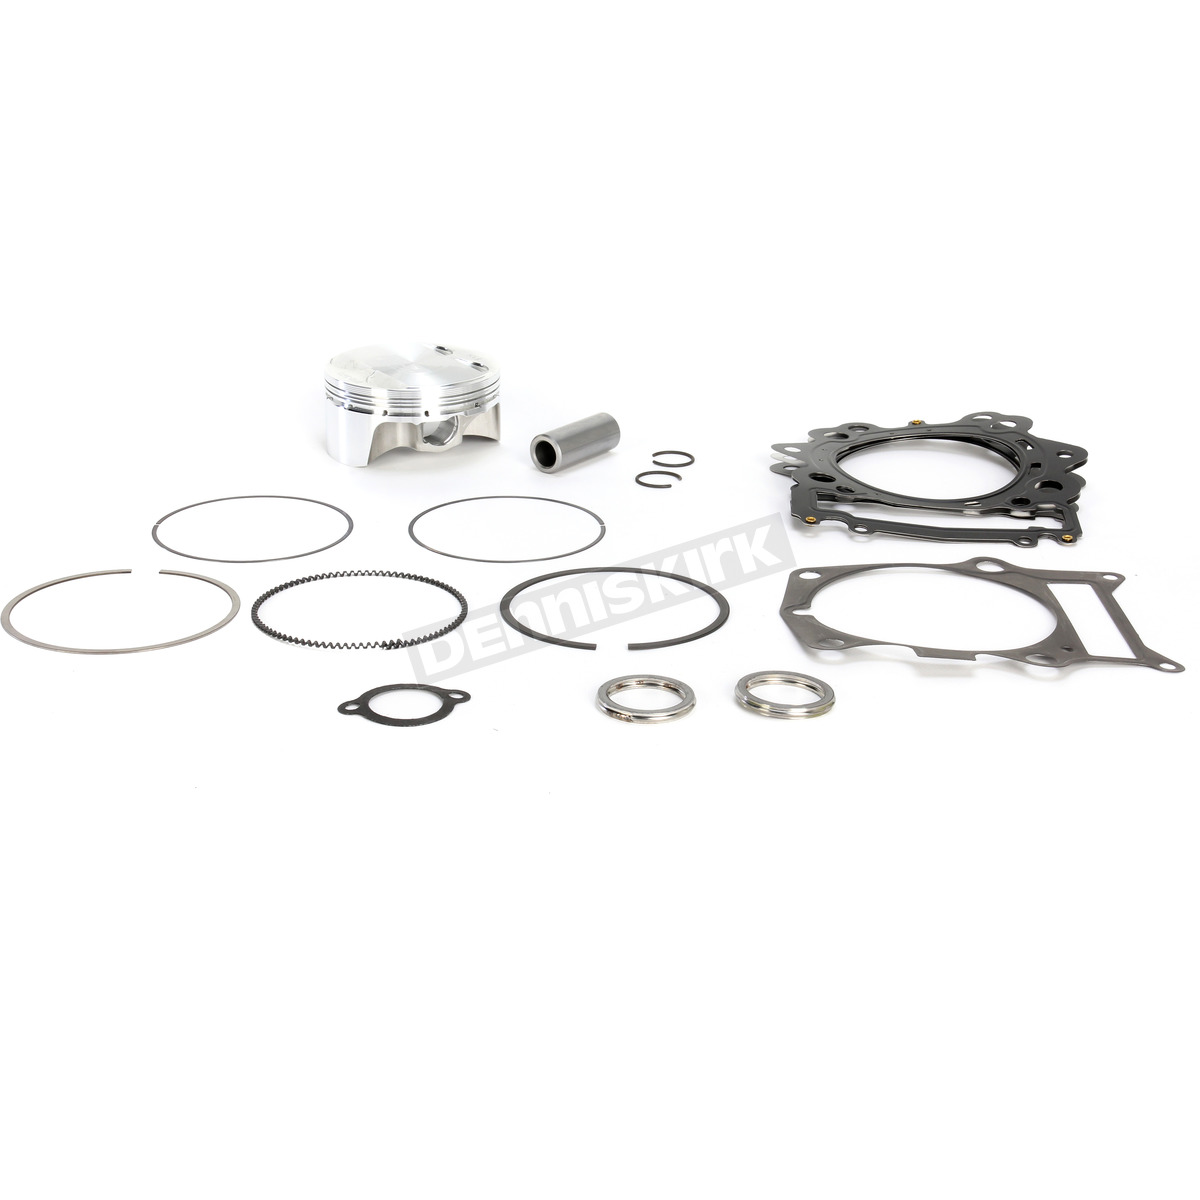 Moose High Performance 11 1 4 Stroke Piston Kit By Cp